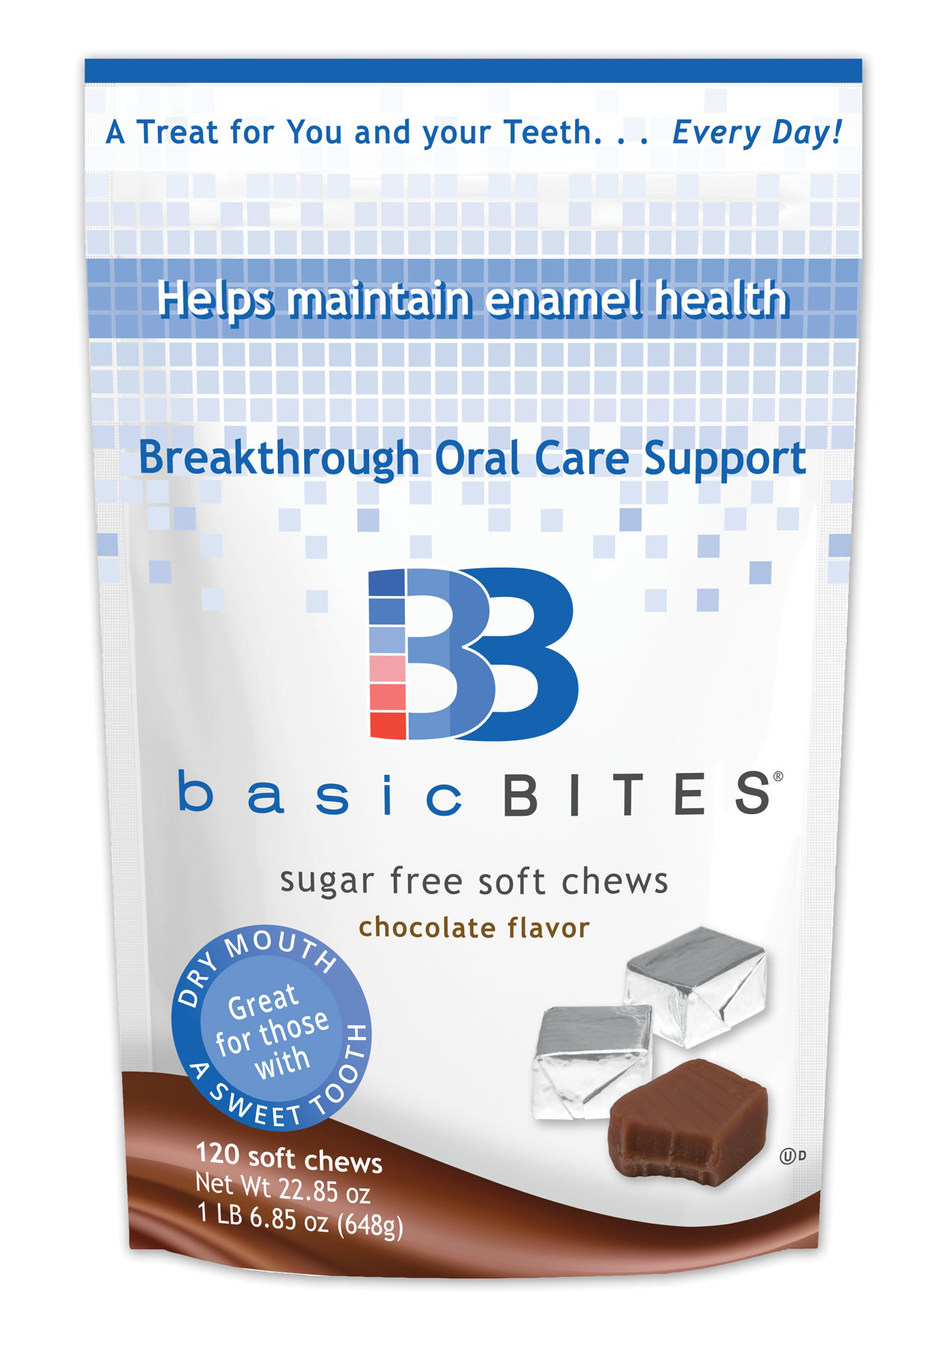 Delicious BasicBites are clinically shown to help maintain enamel health.